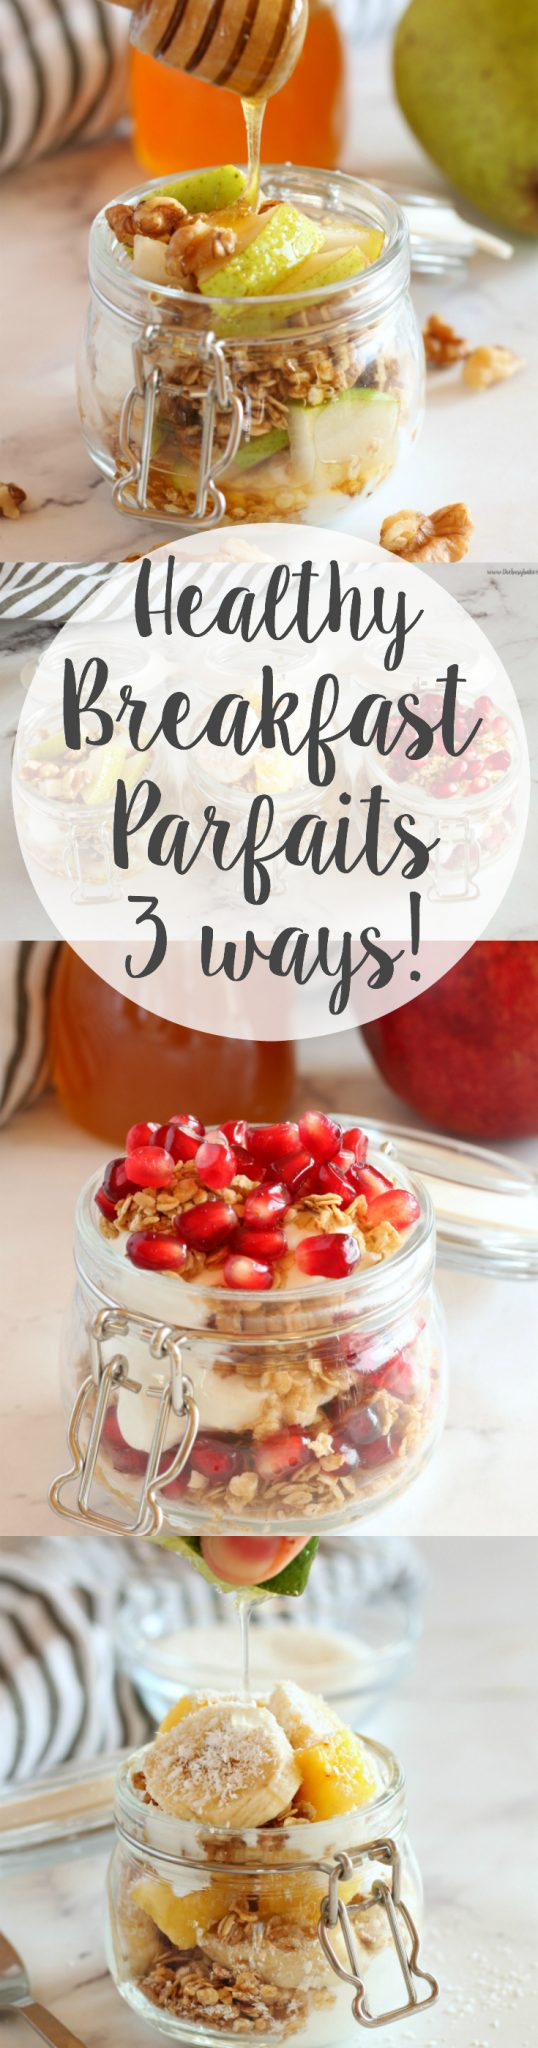 These Breakfast Fruit and Granola Parfaits (Basic Homemade Granola Recipe) are the perfect healthy, wholesome breakfast every day of the week! Recipes from www.thebusybaker.ca via @busybakerblog